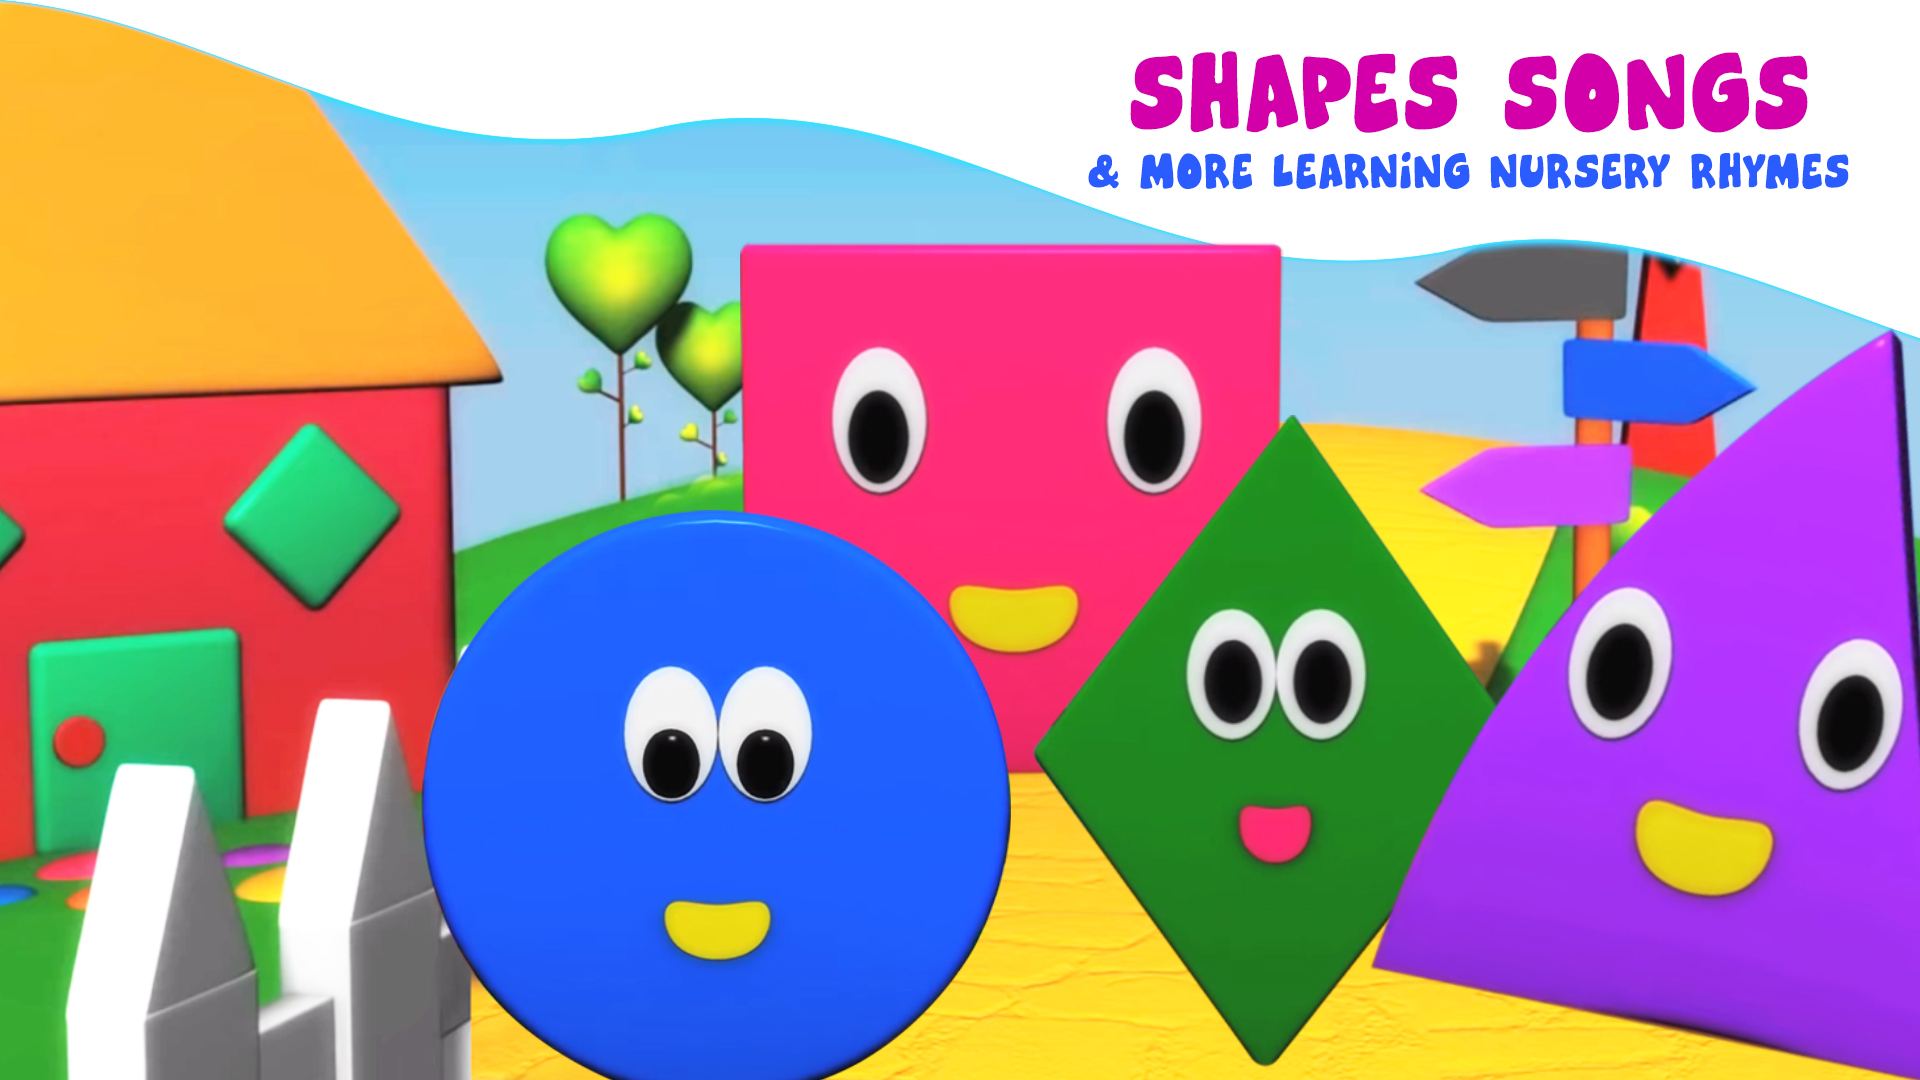 Shapes Songs and More Learning Nursery Rhymes